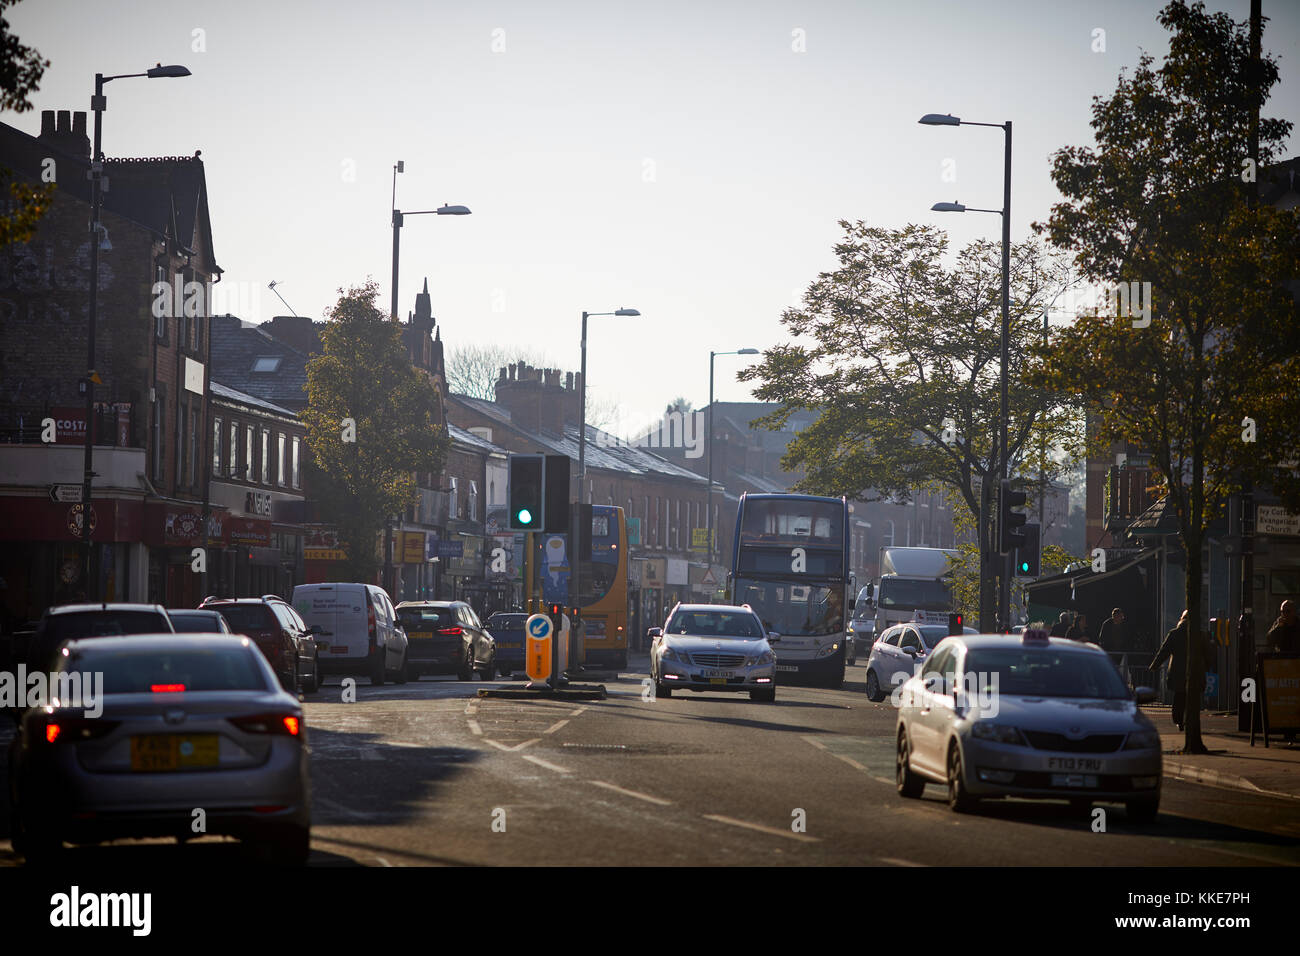 Didsbury Villag, Wilmslow Road in South Manchester - Stock Image